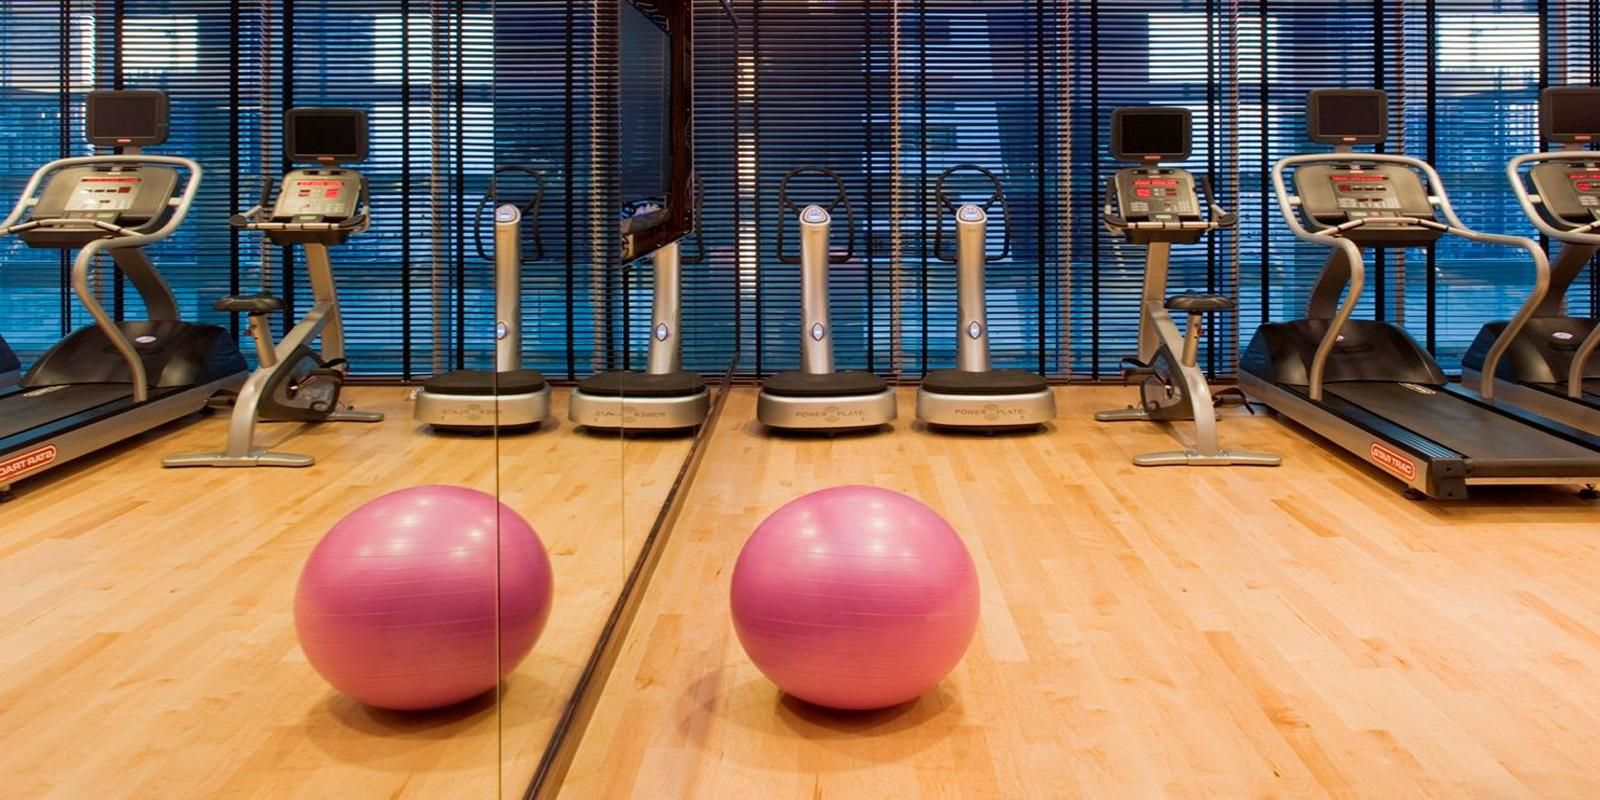 Enjoy our Fitness Center located on the 11th floor